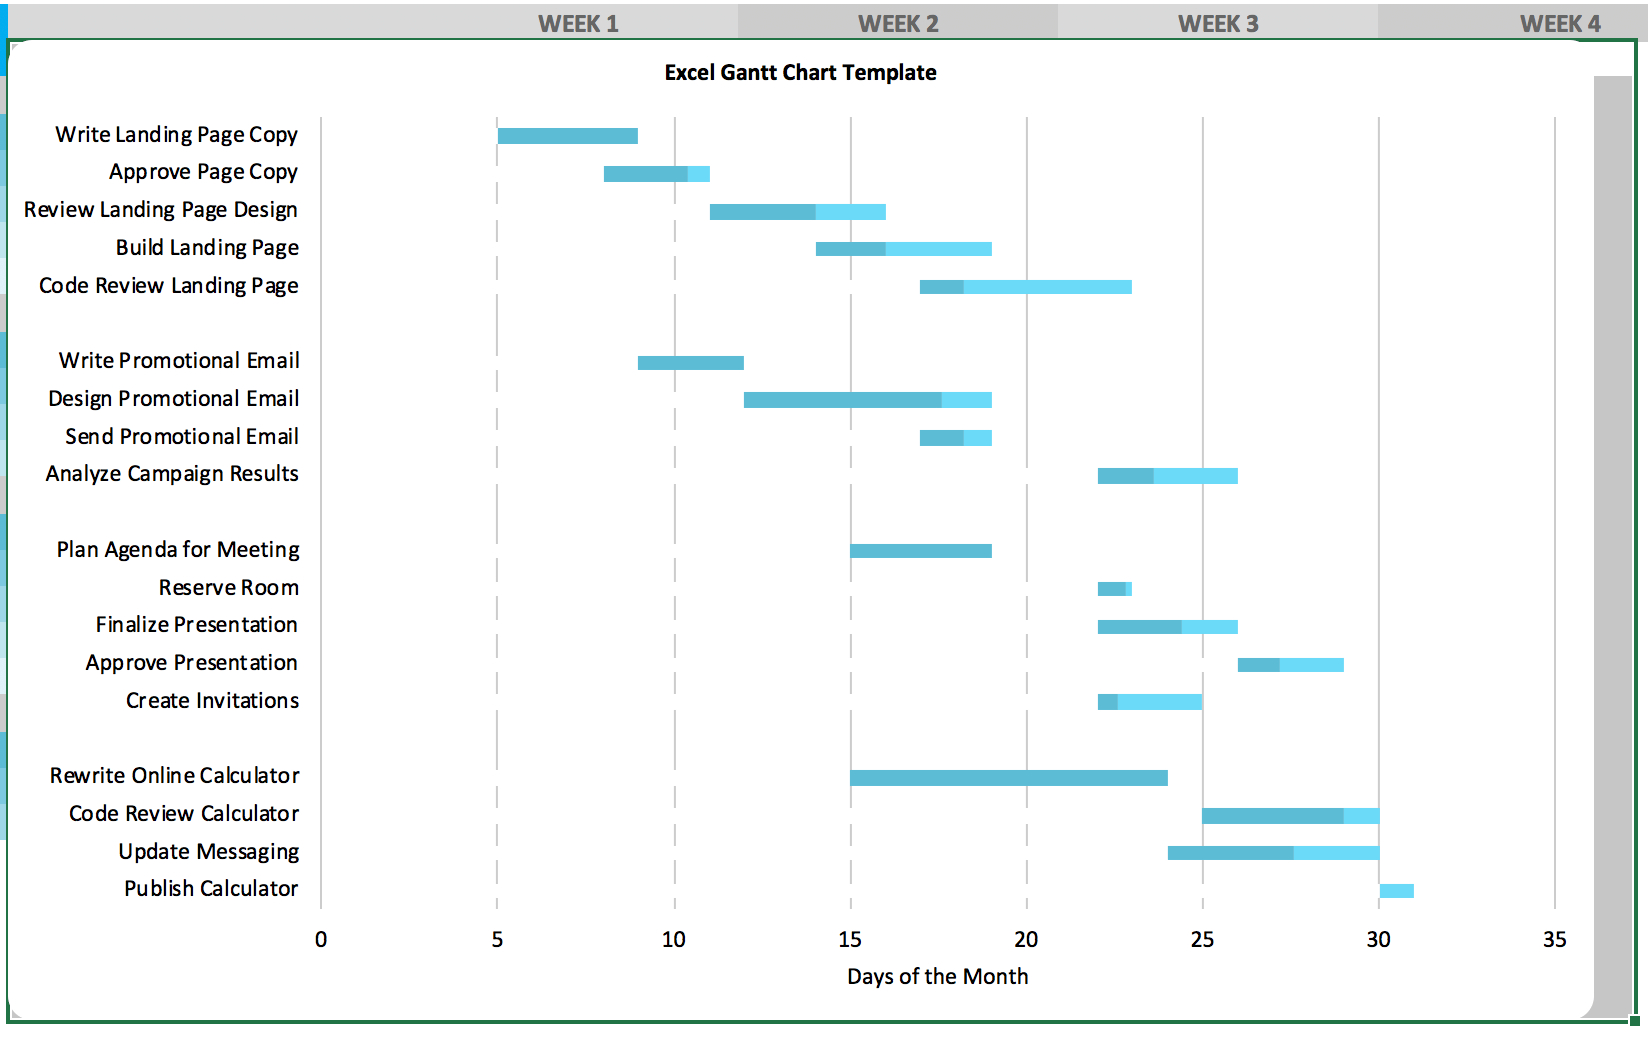 Free Gantt Chart Excel Template: Download Now | Teamgantt Within Excel Gantt Chart Template